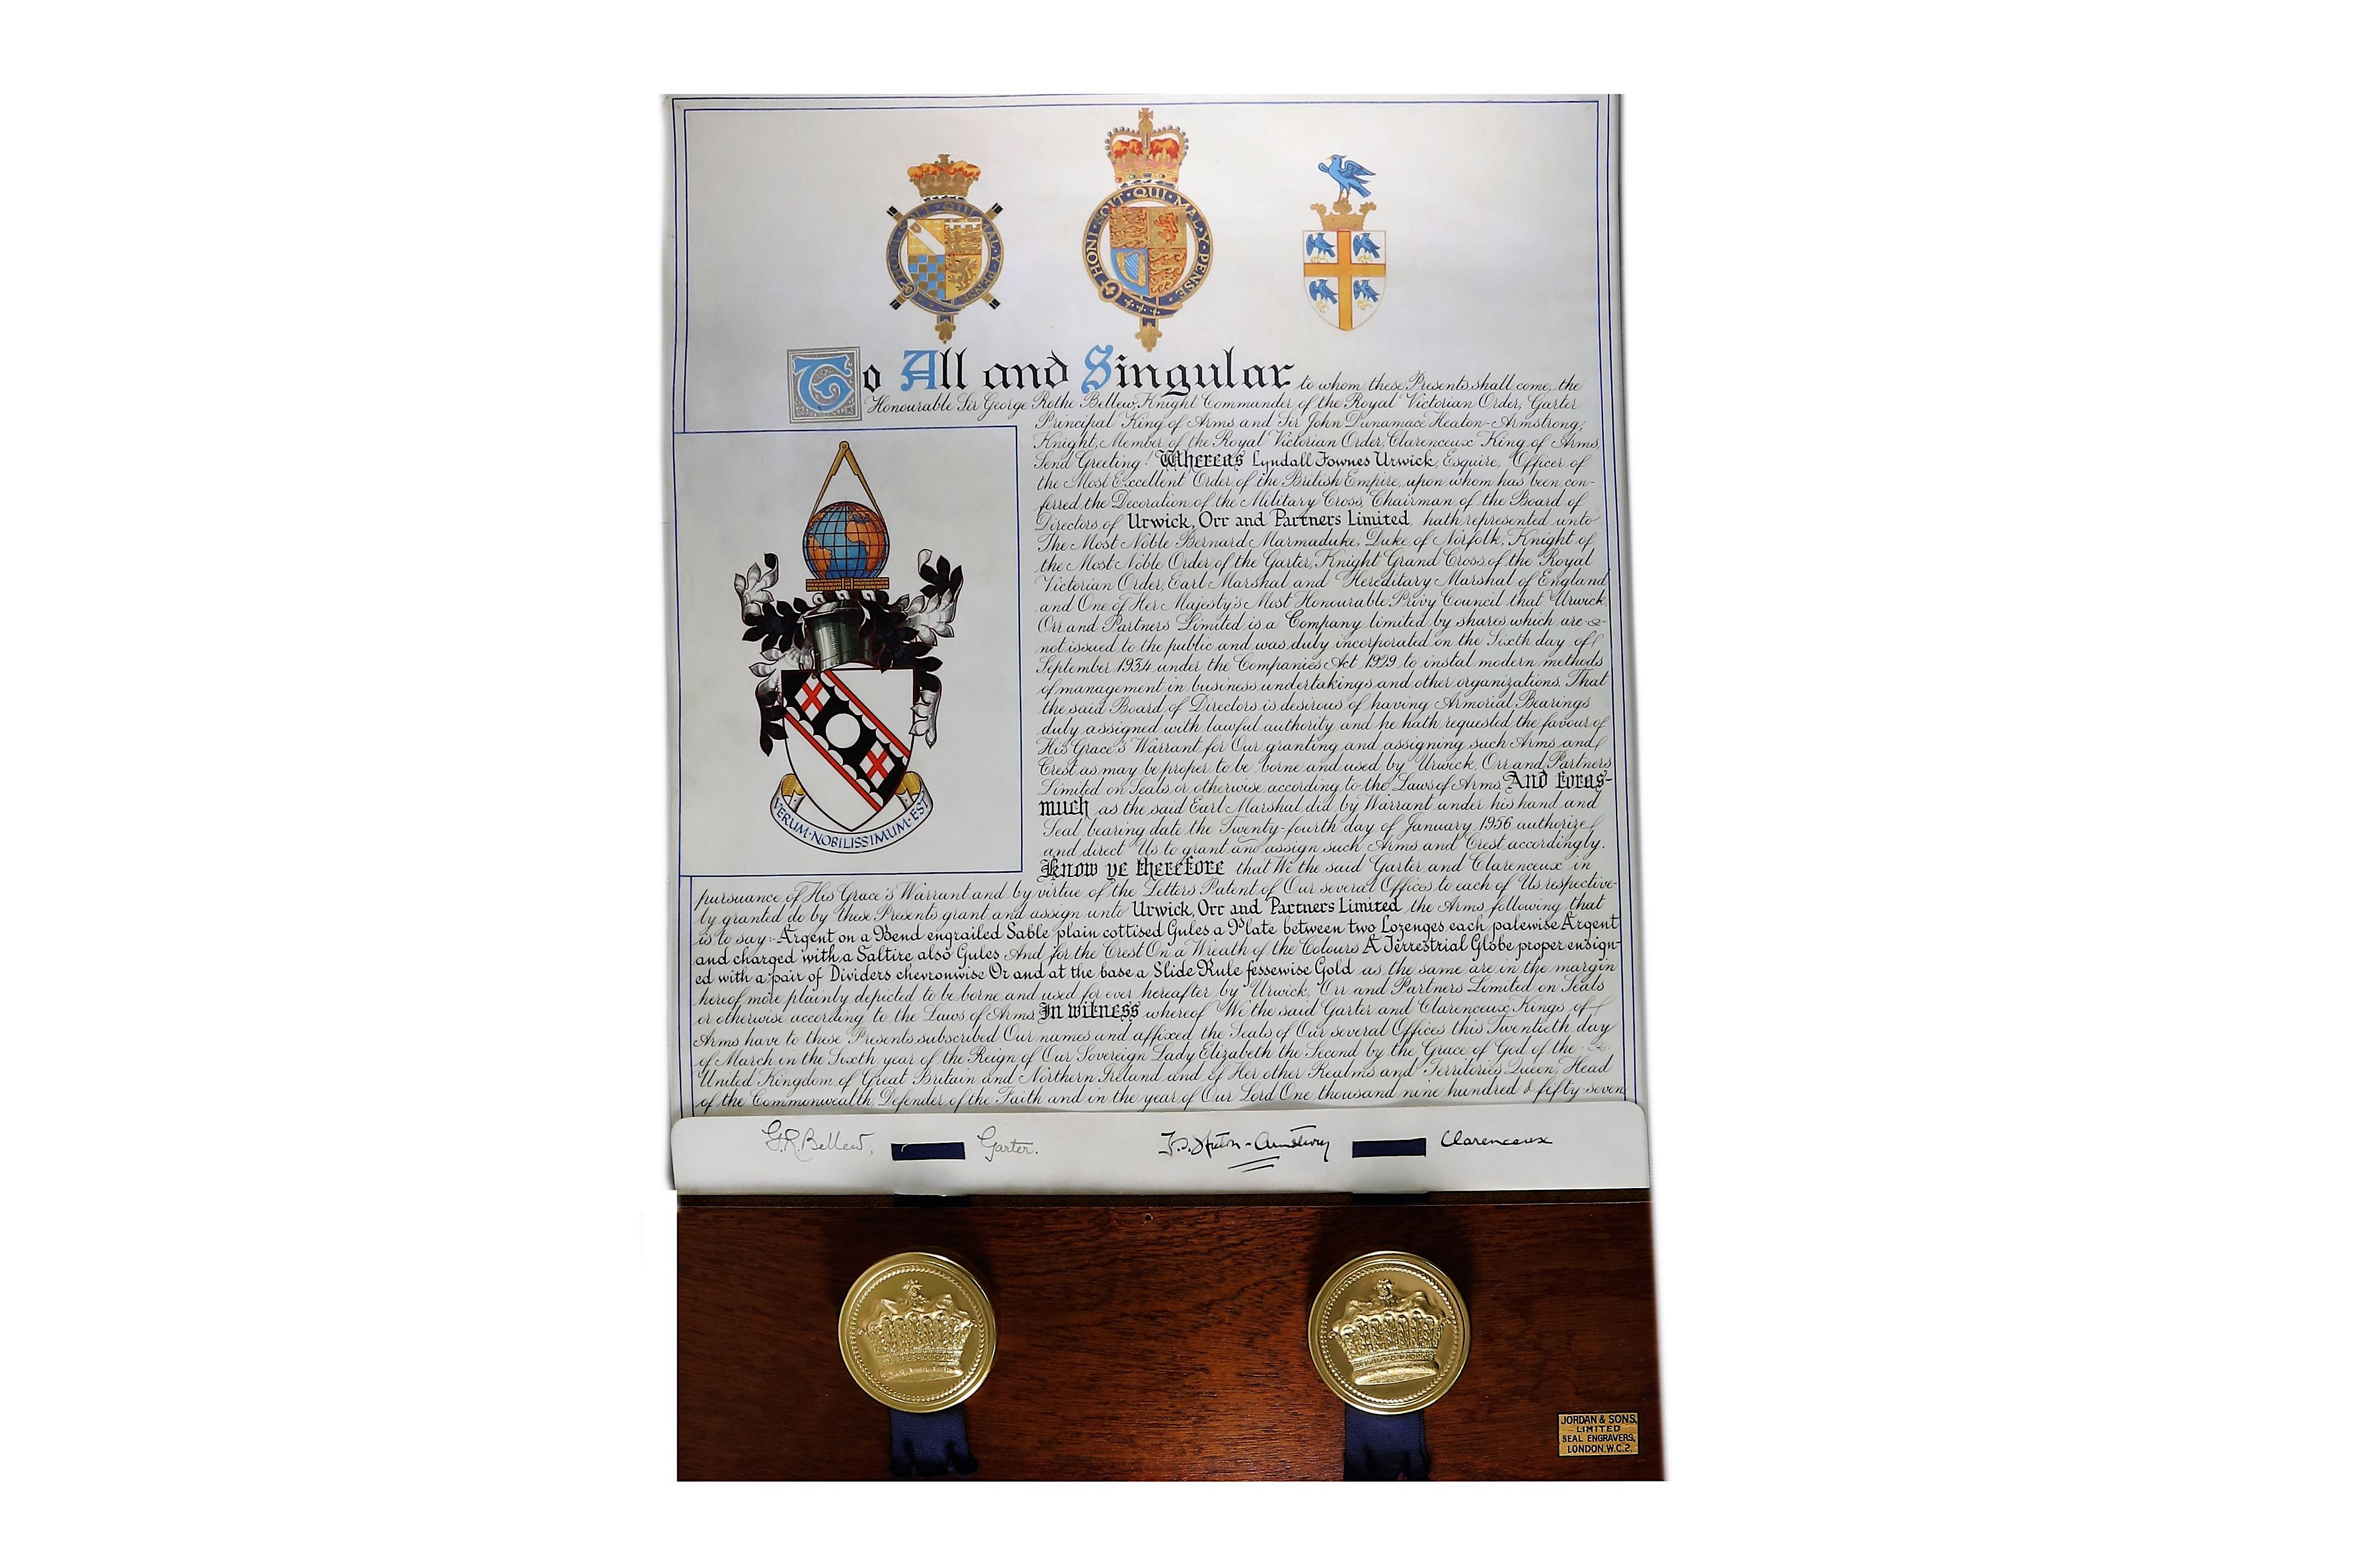 Lot 210 - Grant of Arms.-Urwick Orr & Partners Original Grant of Armsapplied for by Lynden Fownes Urwick OBE